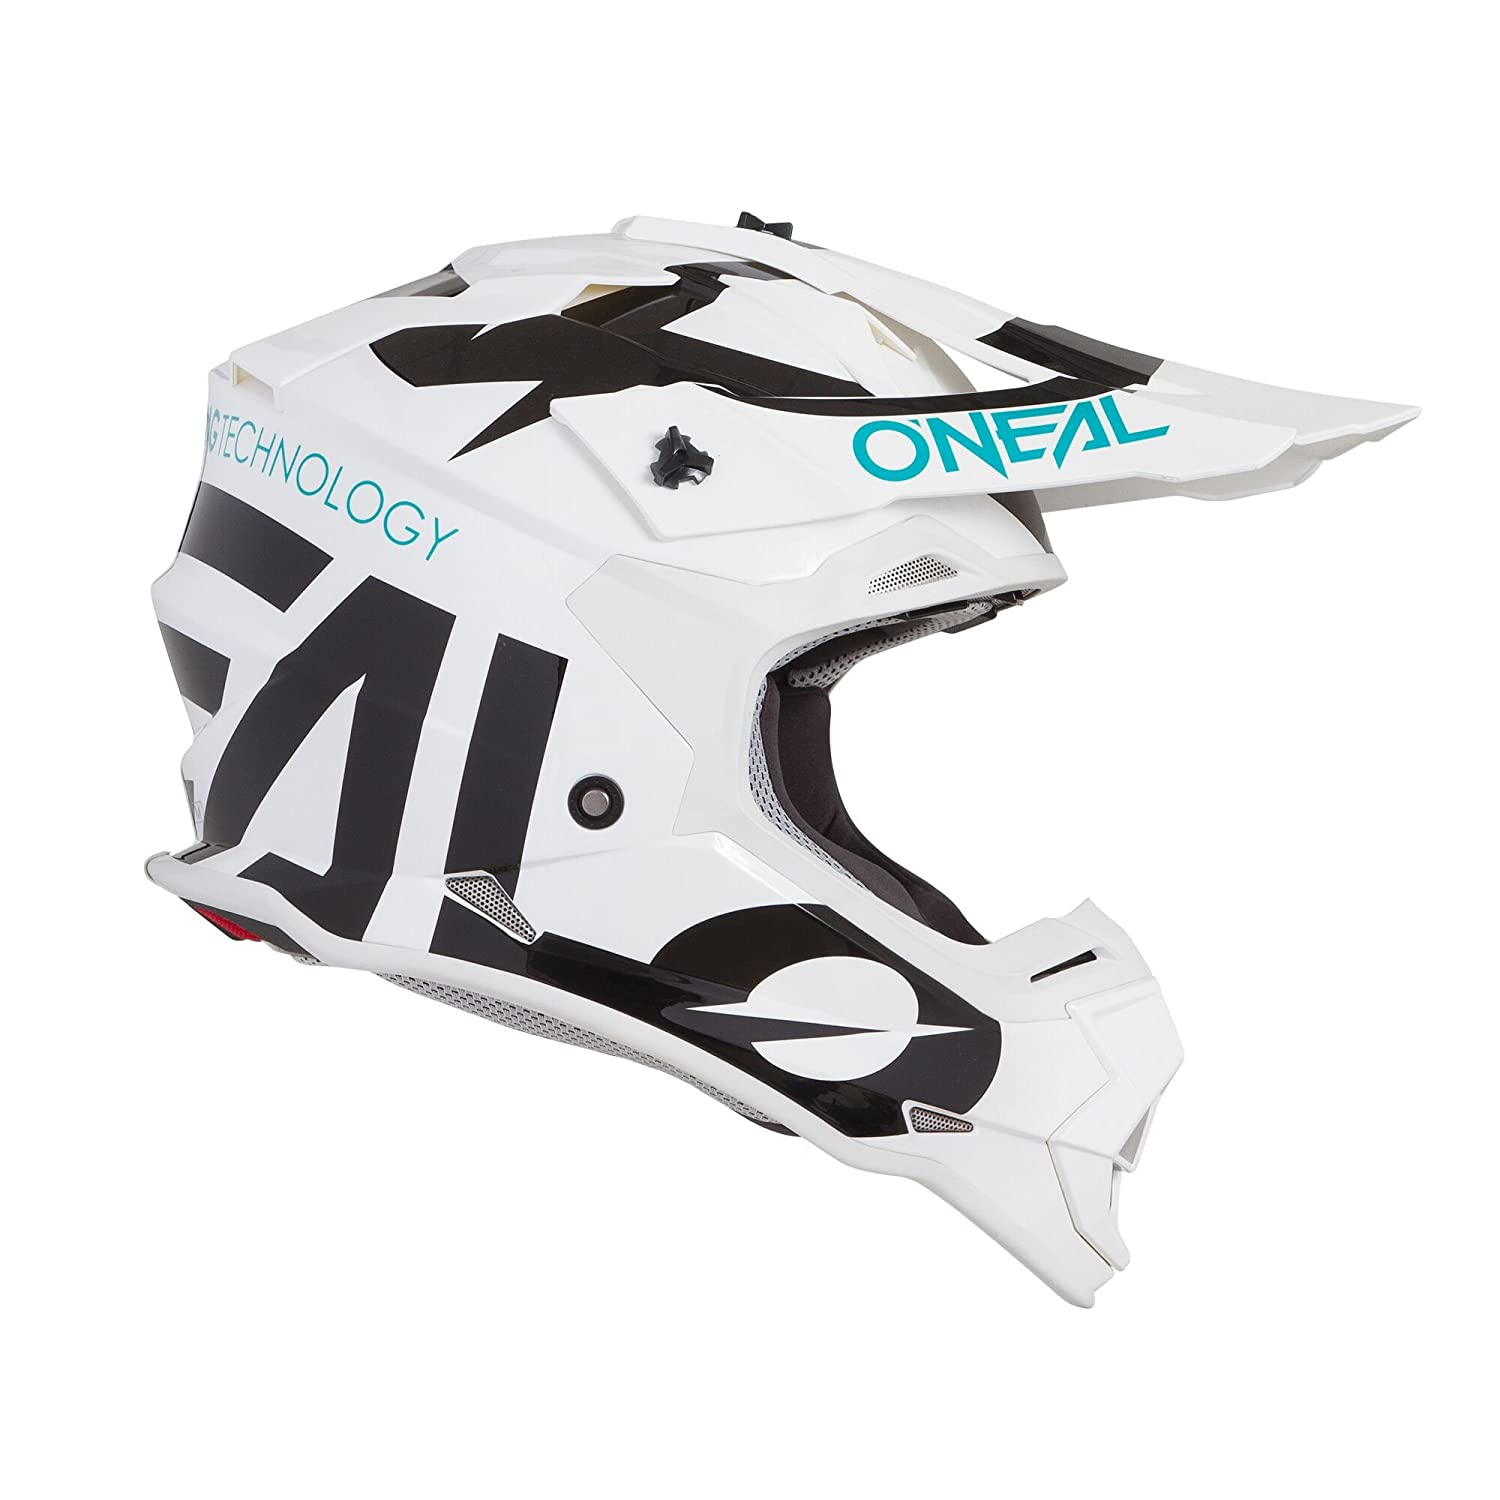 0200-S44 Oneal 2 Series RL Slick Motocross Helmet L White Black